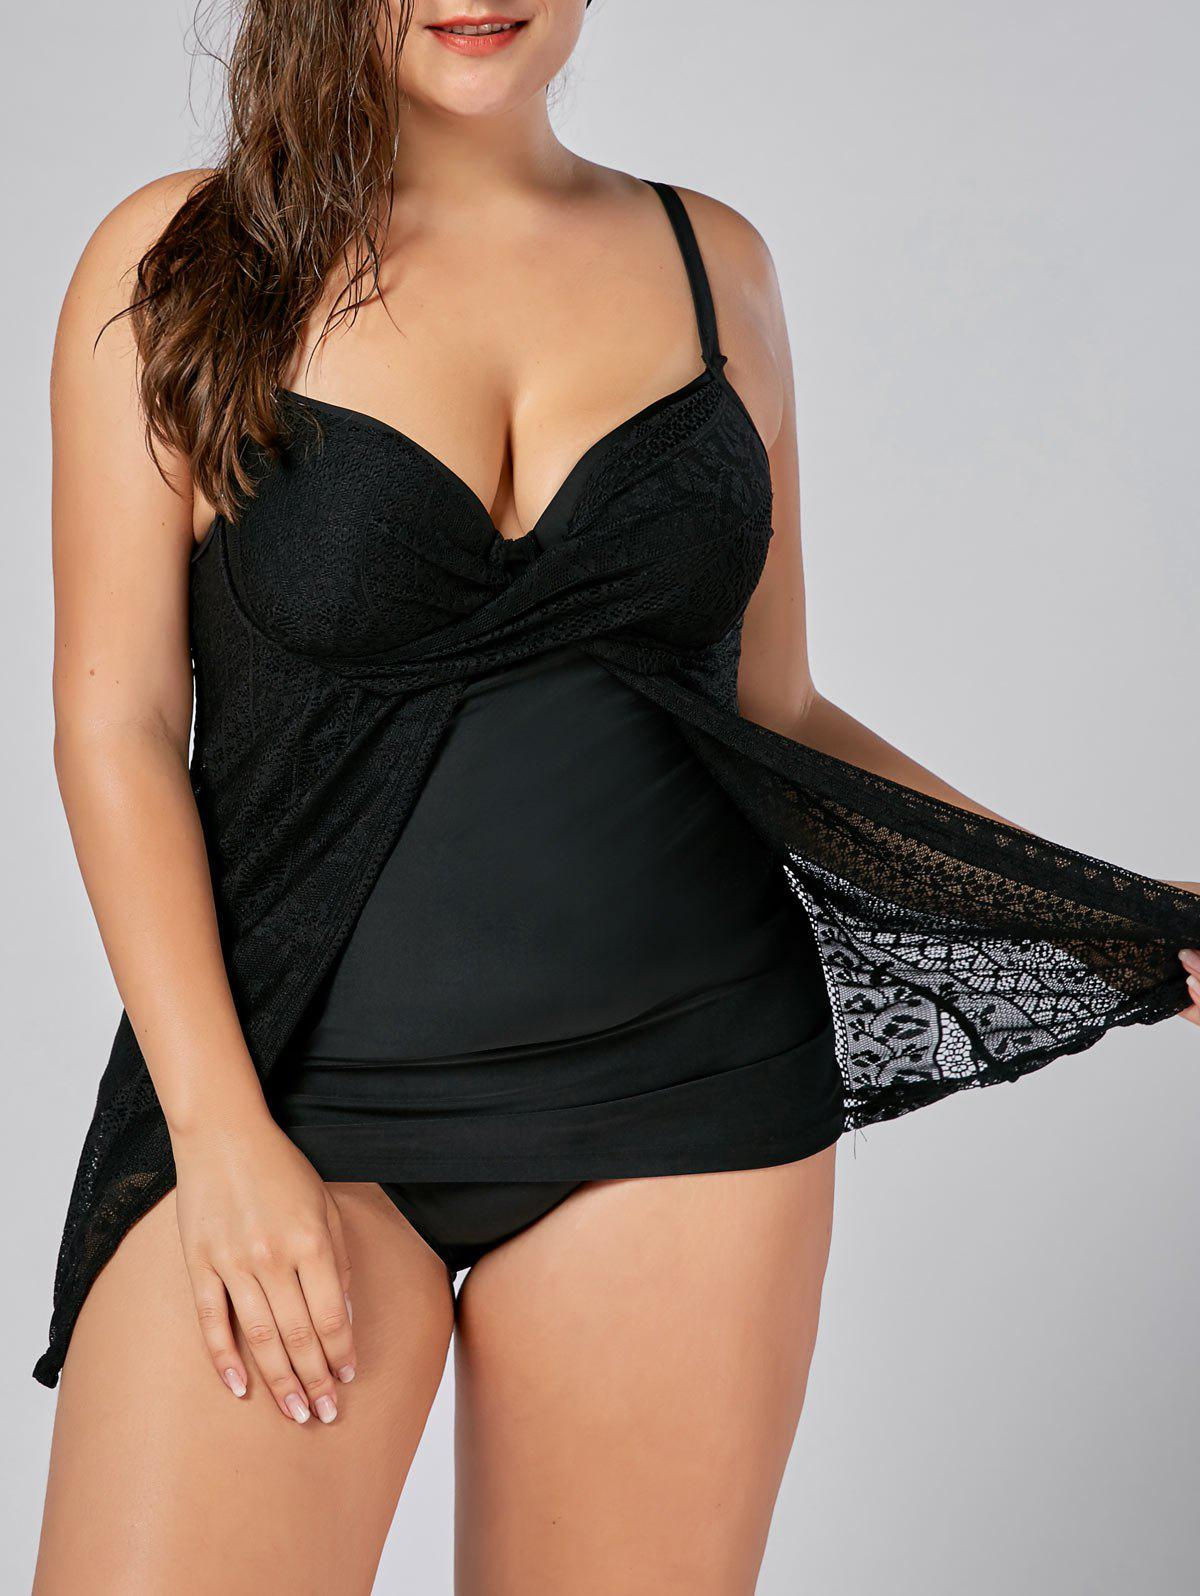 Push Up Underwire Plus Size Lace TankiniWOMEN<br><br>Size: 3XL; Color: BLACK; Gender: For Women; Swimwear Type: Tankini; Material: Polyester,Spandex; Bra Style: Push Up; Support Type: Underwire; Neckline: Spaghetti Straps; Pattern Type: Solid; Waist: High Waisted; Weight: 0.3700kg; Package Contents: 1 x Tankini Top 1 x Briefs;